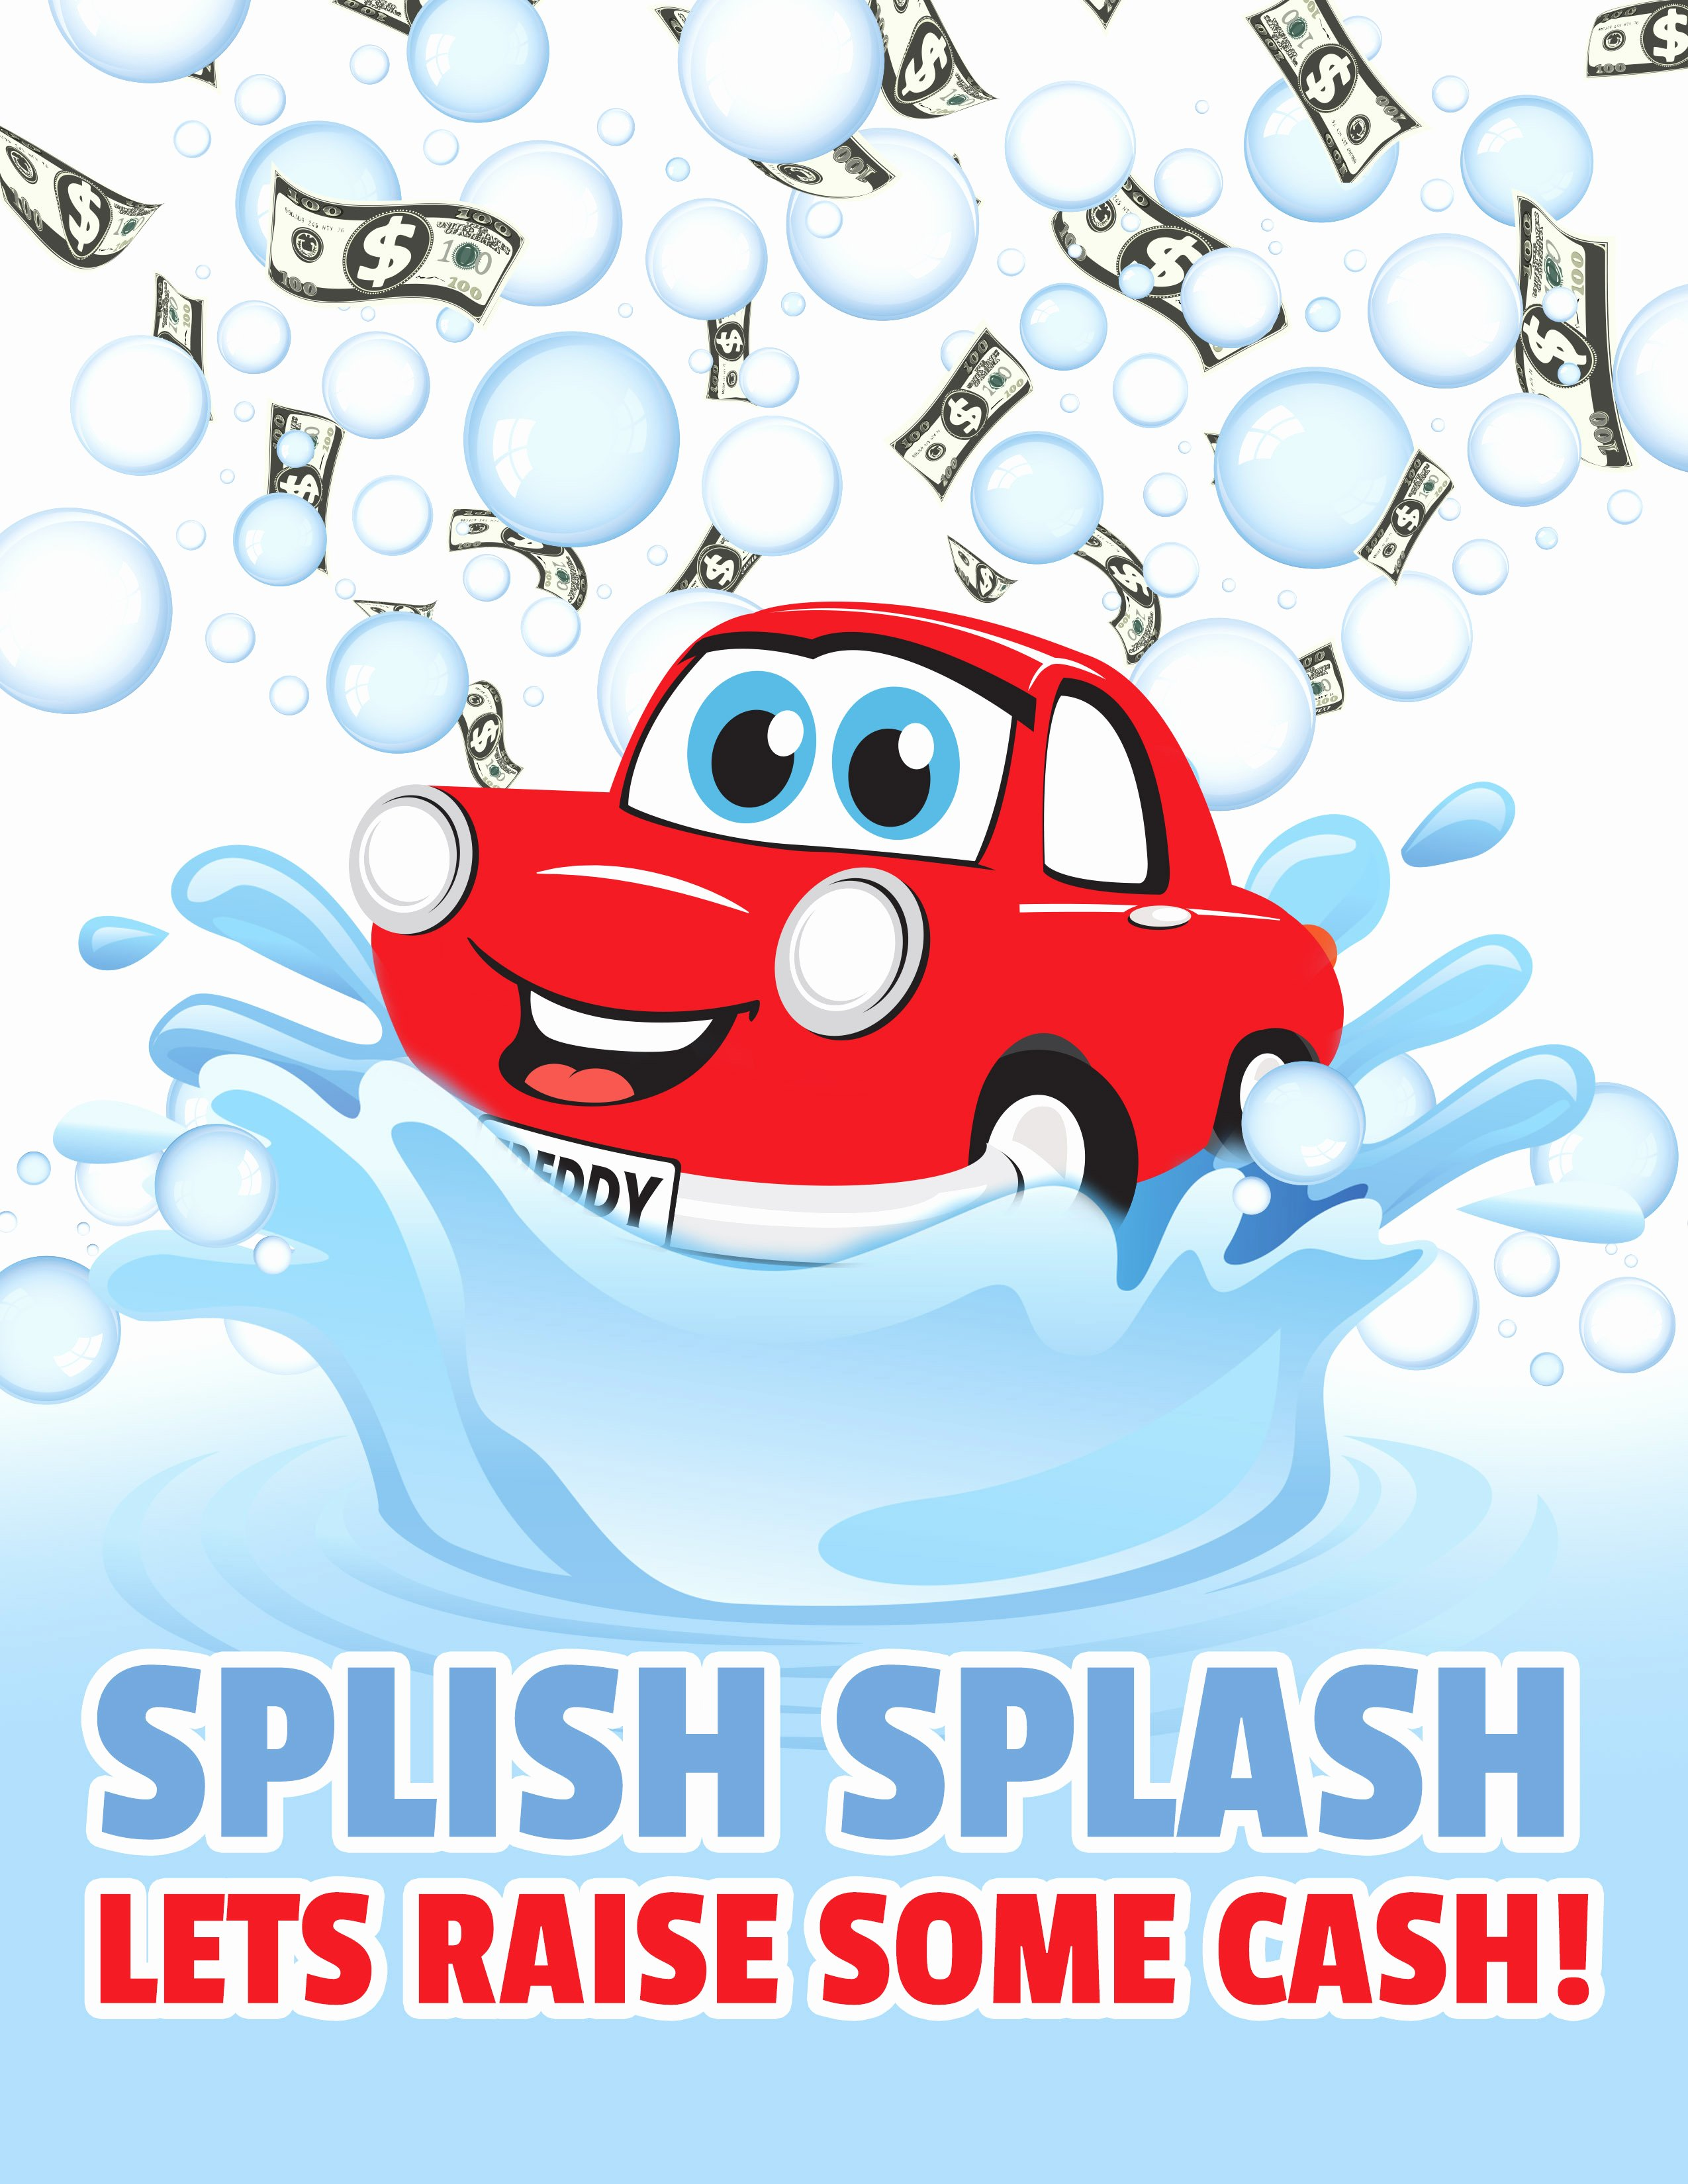 Car Wash Fundraiser Template Awesome Raise some Funds In Fabulous Style